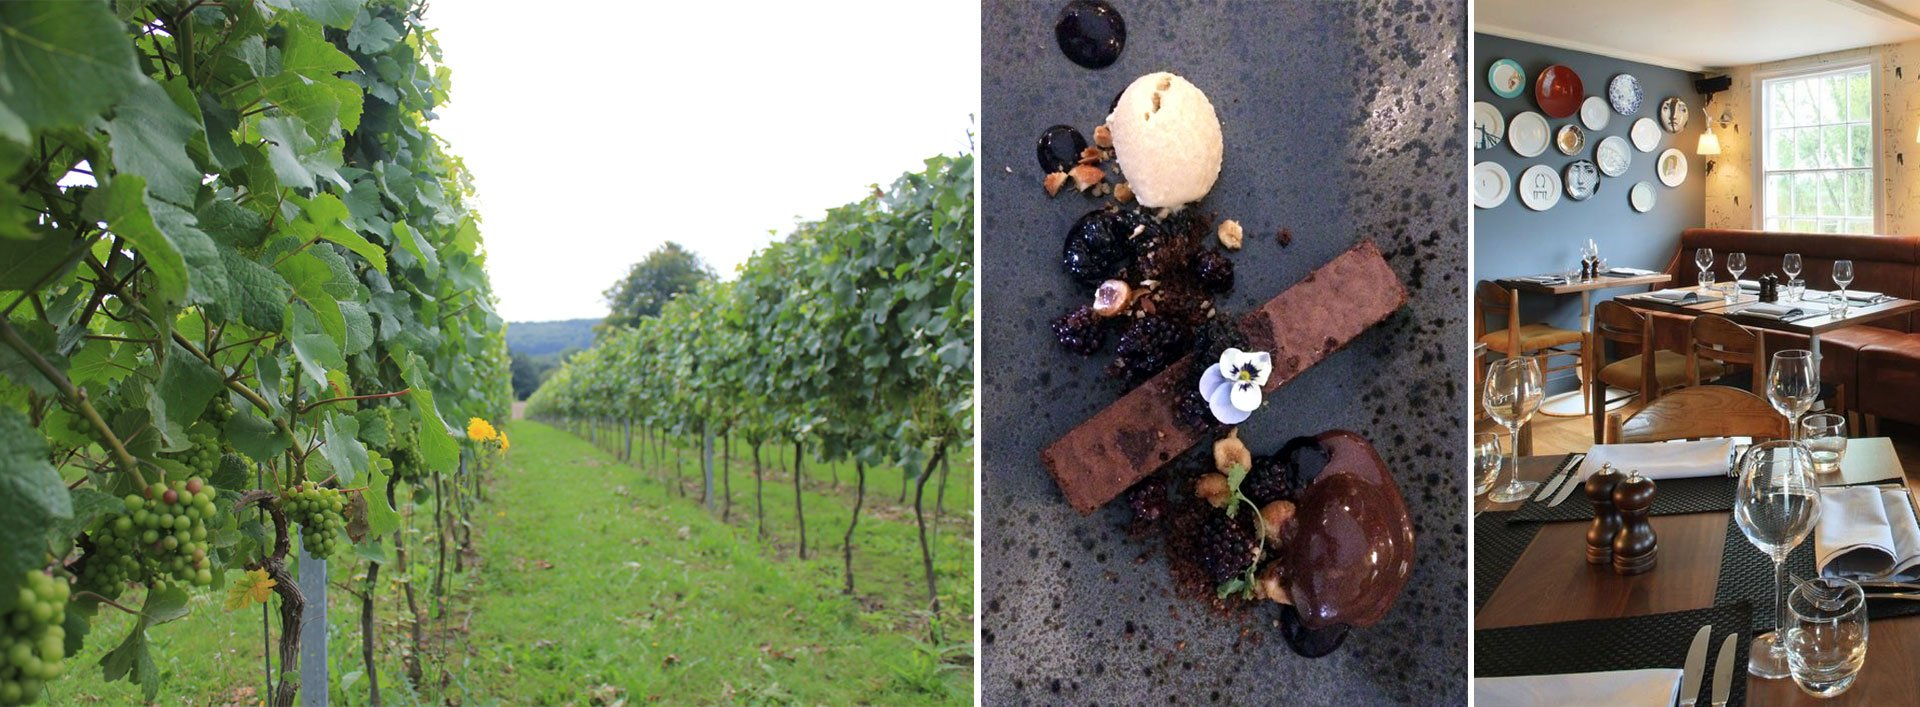 Veraison srating in the Pinot Noir vines. Chocolate brownie with pickled balckberries, yummy! The Curlew